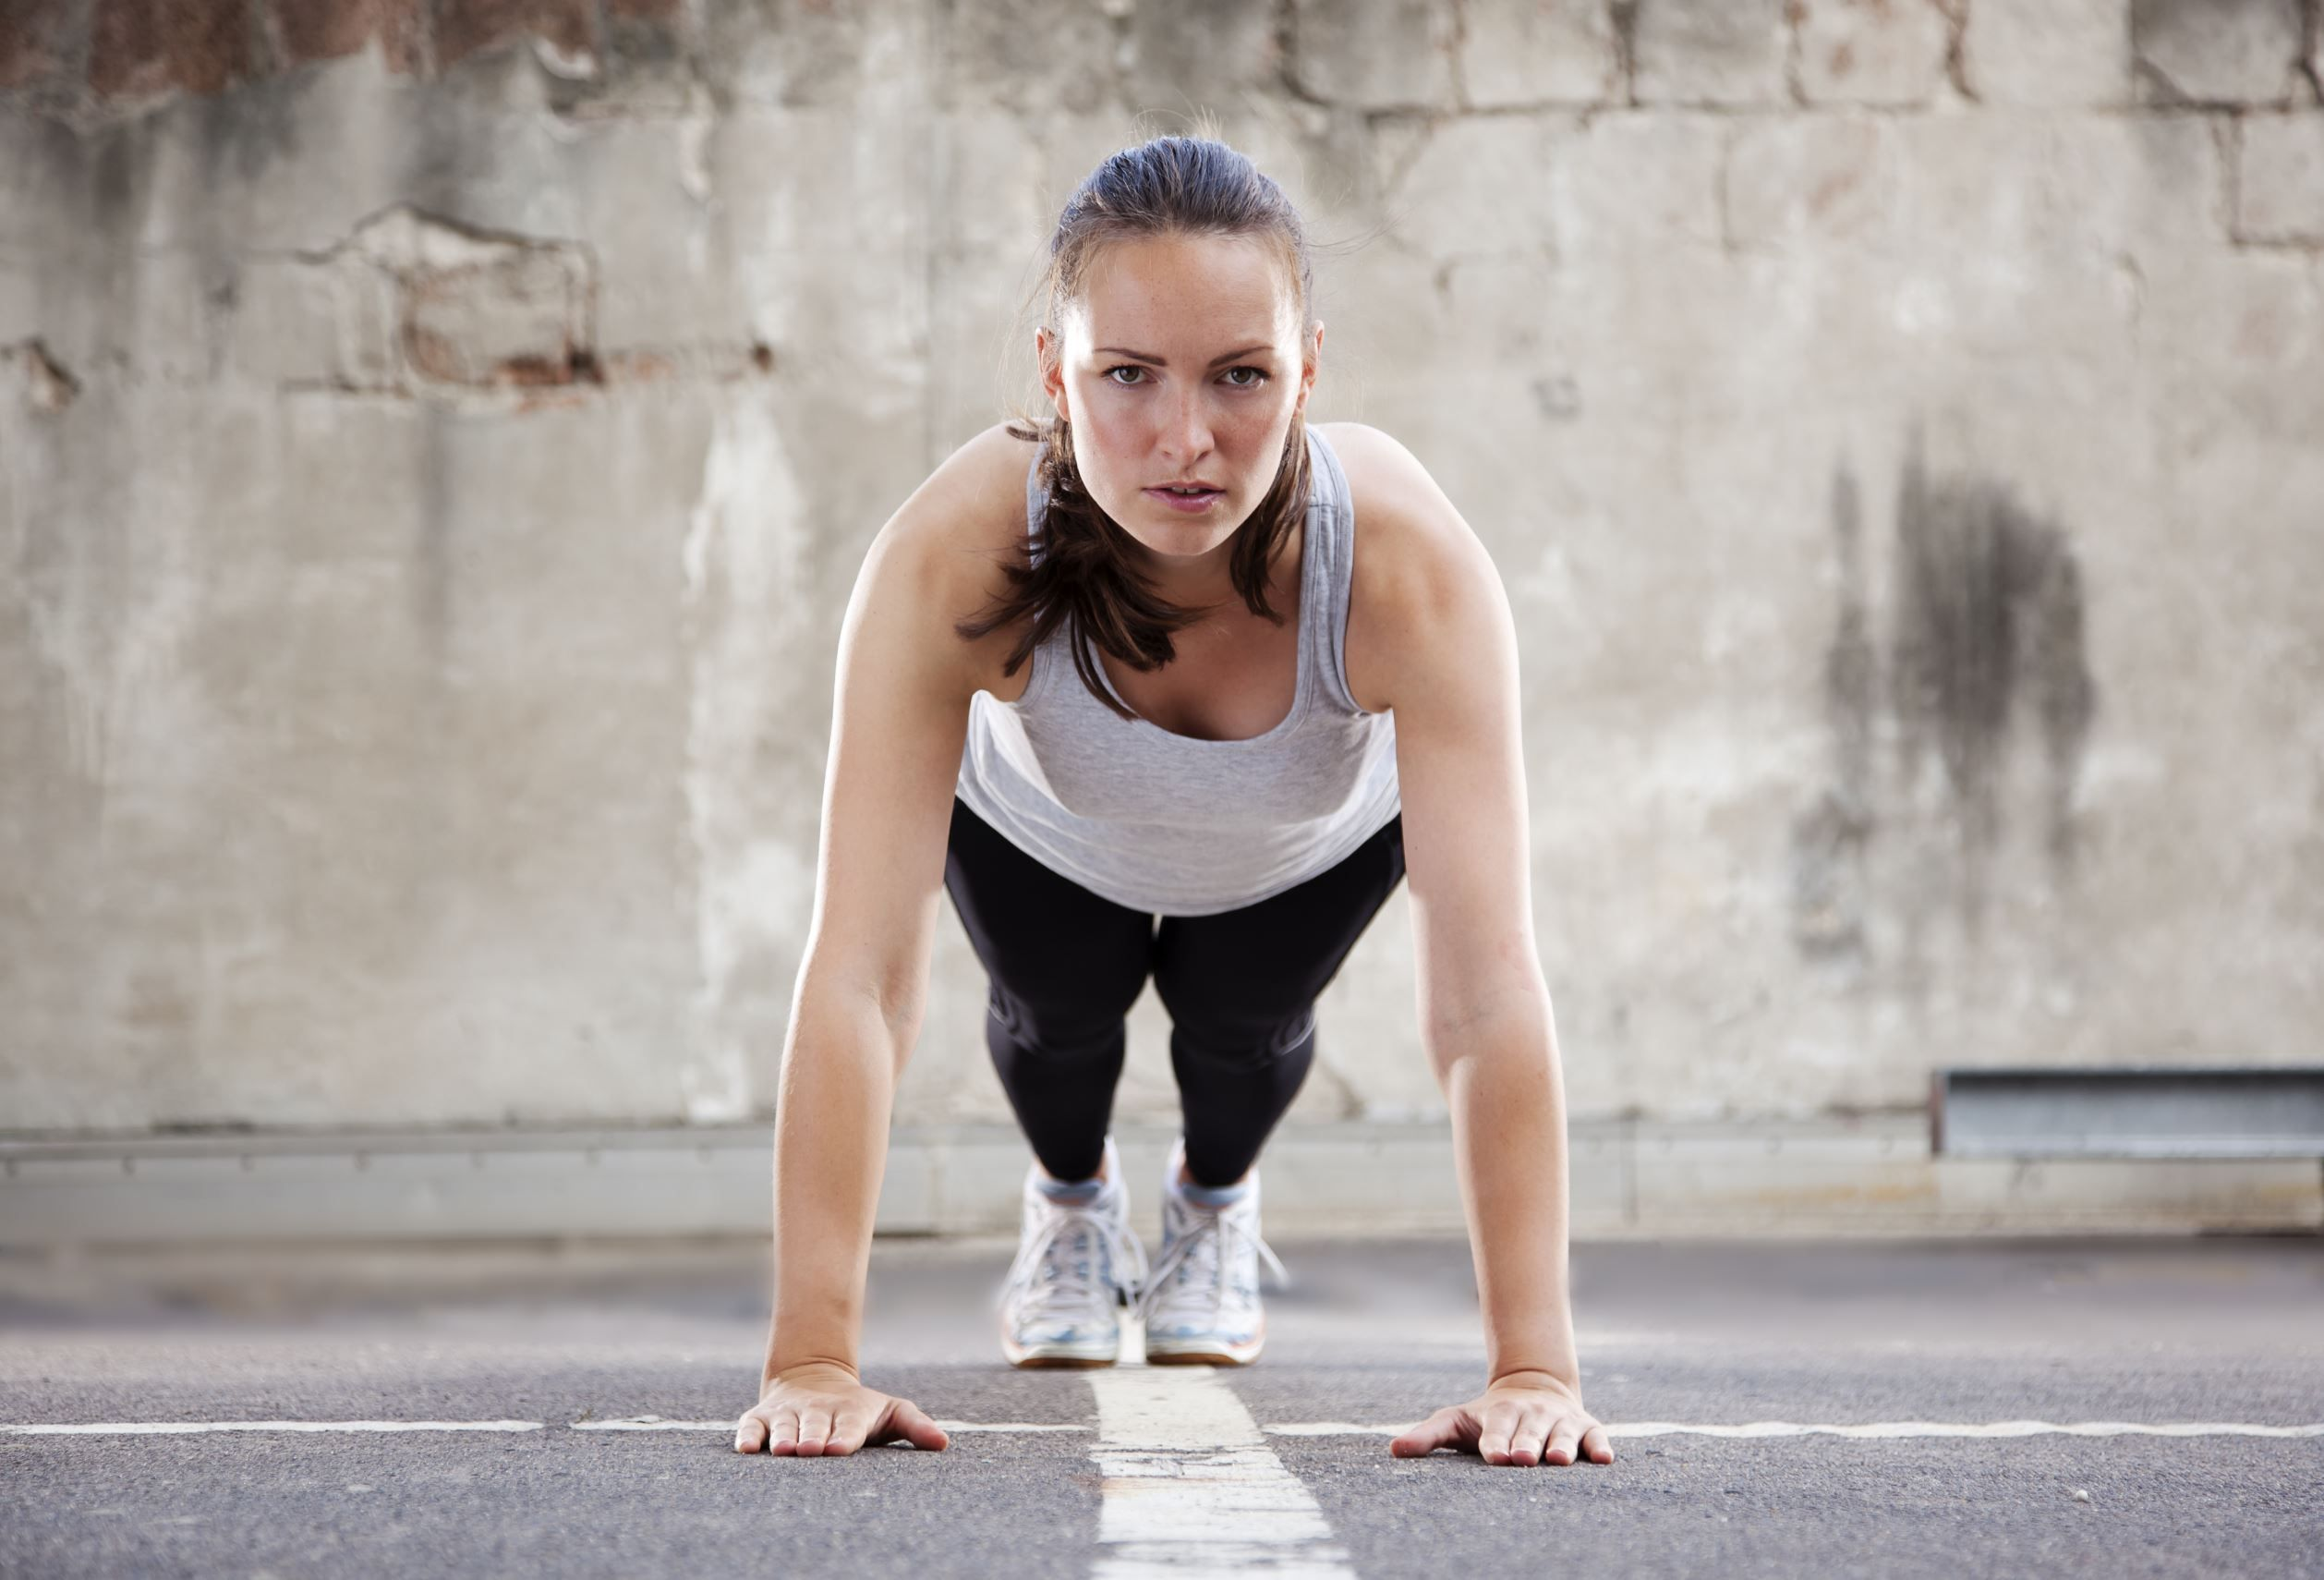 Total-Body Tabata - Get Ready to Torch and Tone